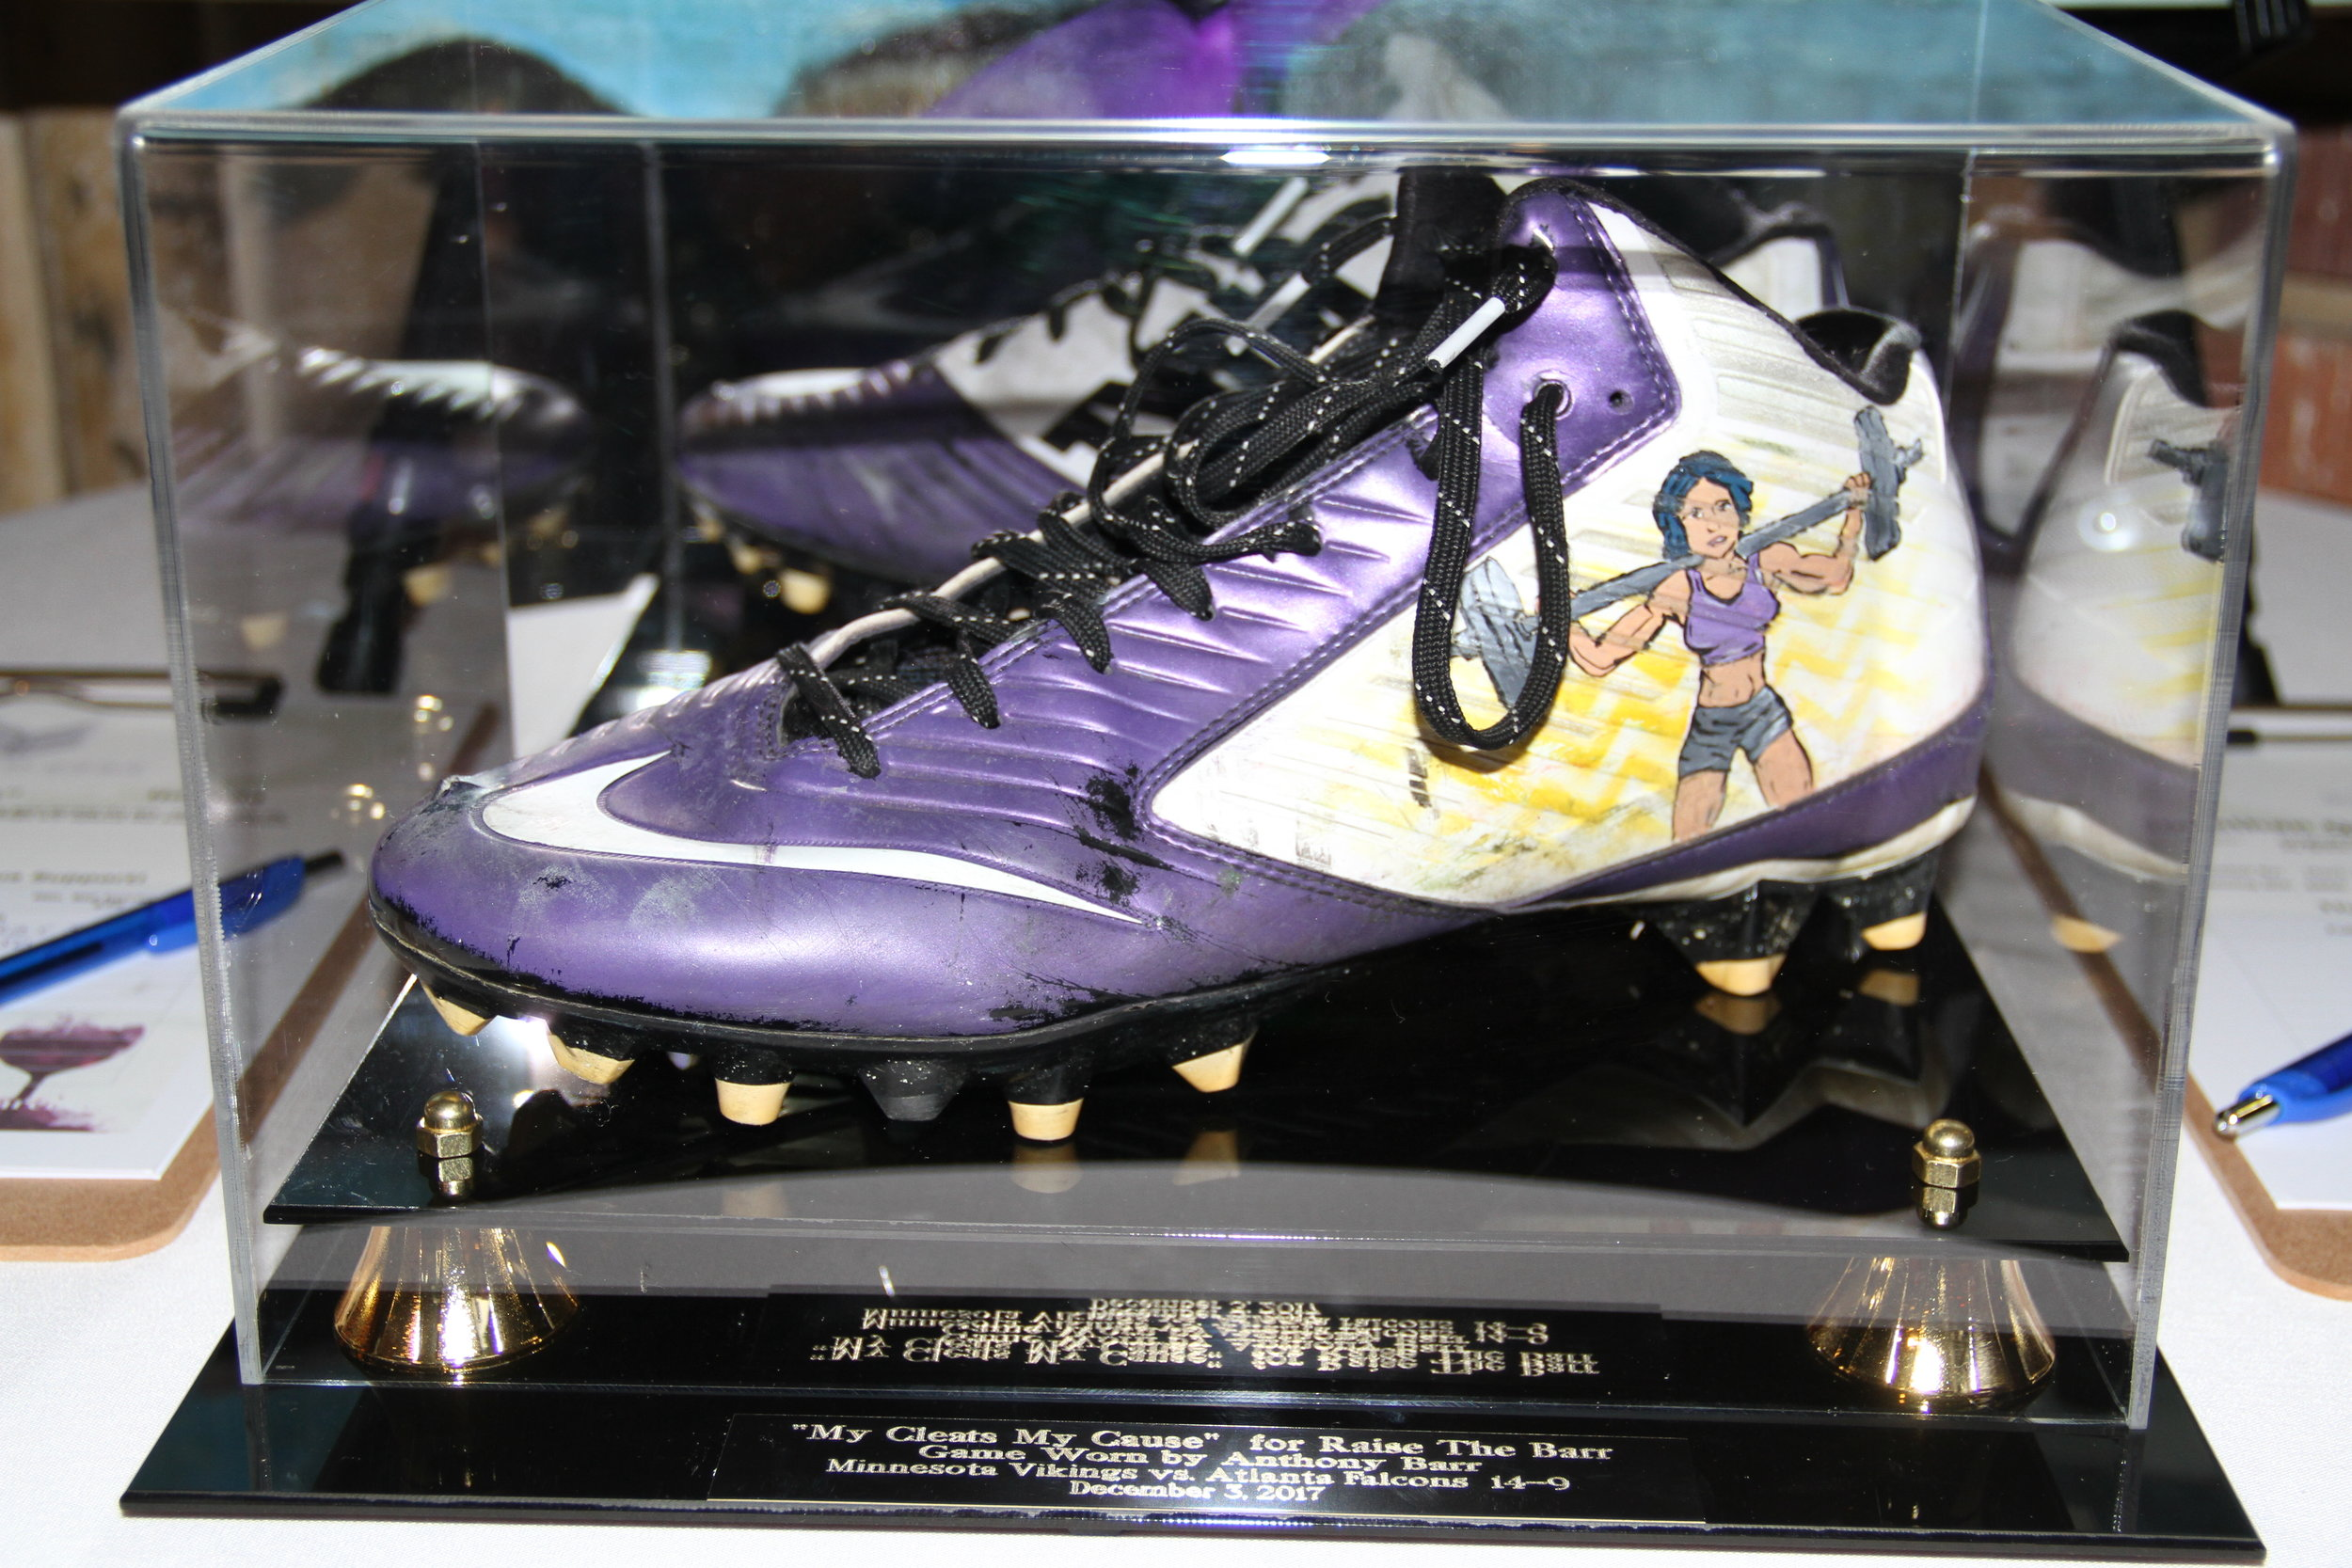 Game Worn Cleats for Auction at Anthony Barr's Fundraiser